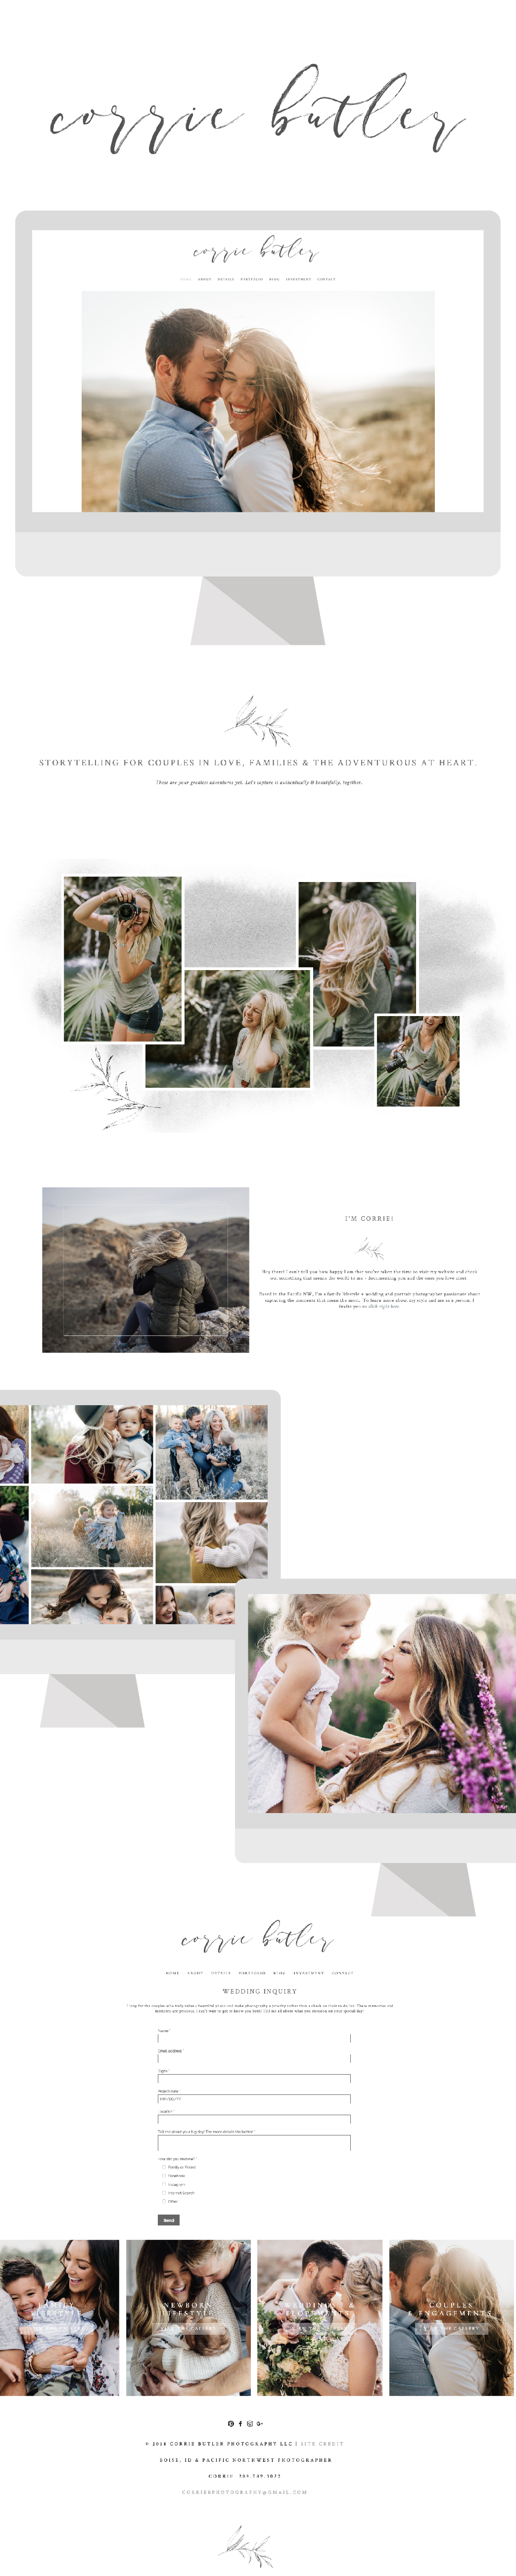 Corrie Butler| ERC Project Showcase | Website highlight showcase for Pinterest | Squarespace Website Designer For Photographers